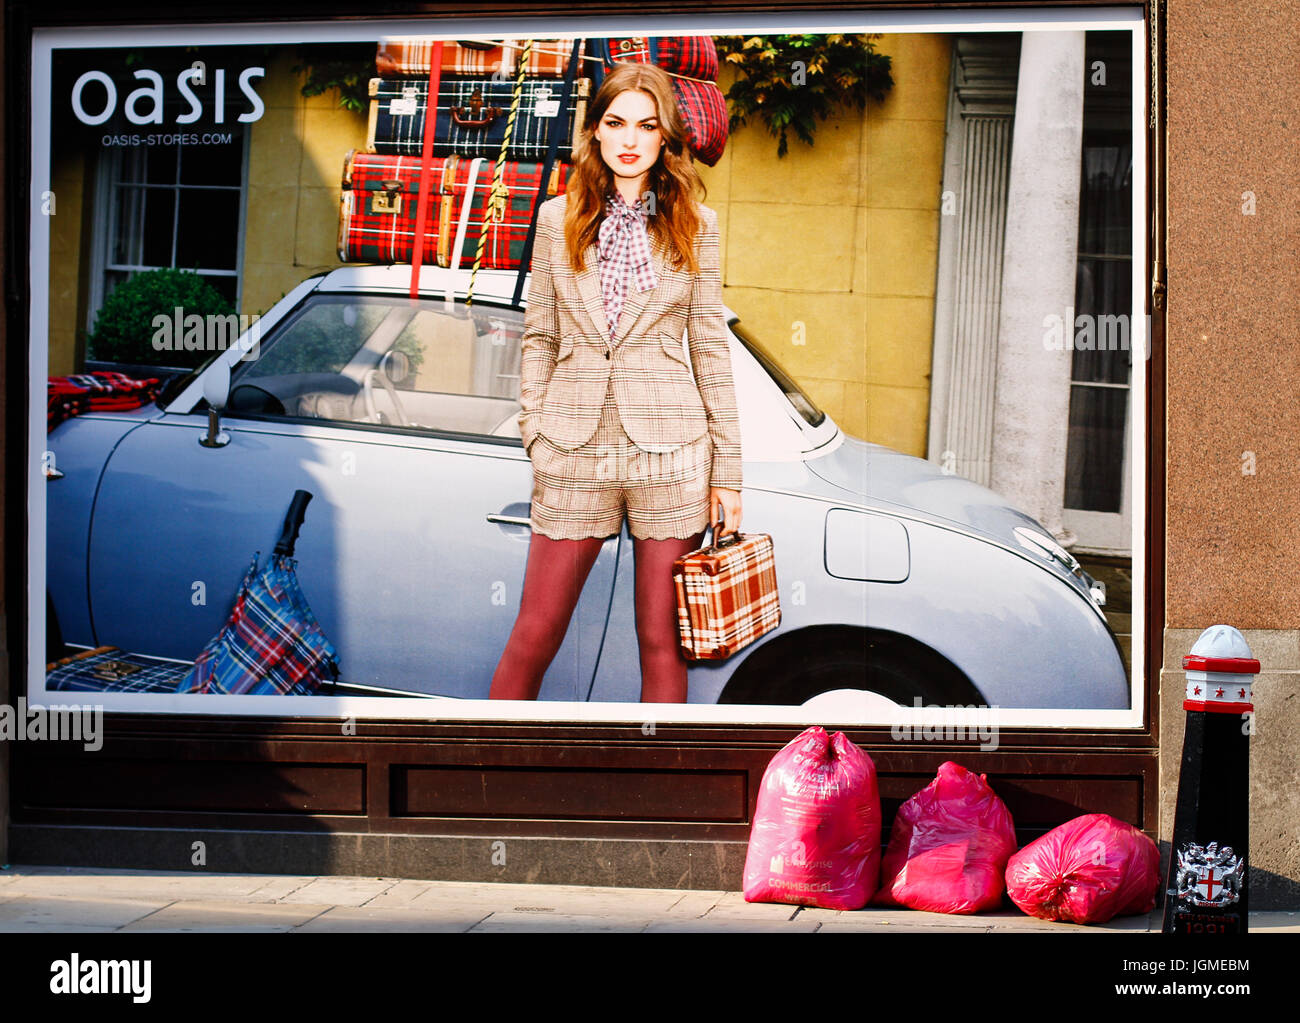 big advert on the wall with few rubbish bags placed under advertisement. Girl holding trendy bag. car packed with - Stock Image